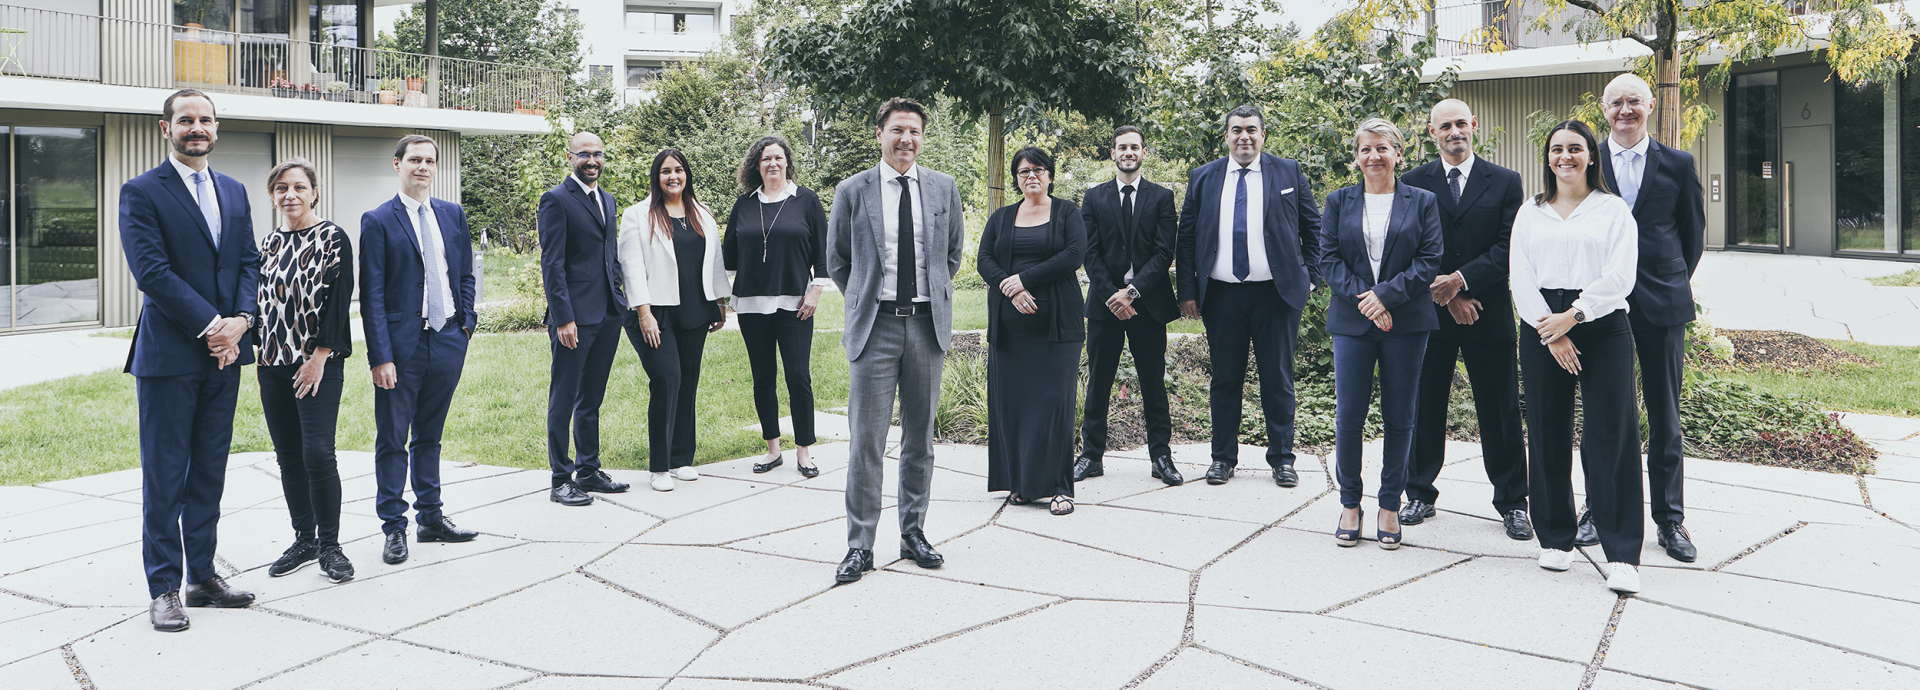 agence-immobiliere-geneve-service-comptabilite-moser-vernet-cie-2021-2